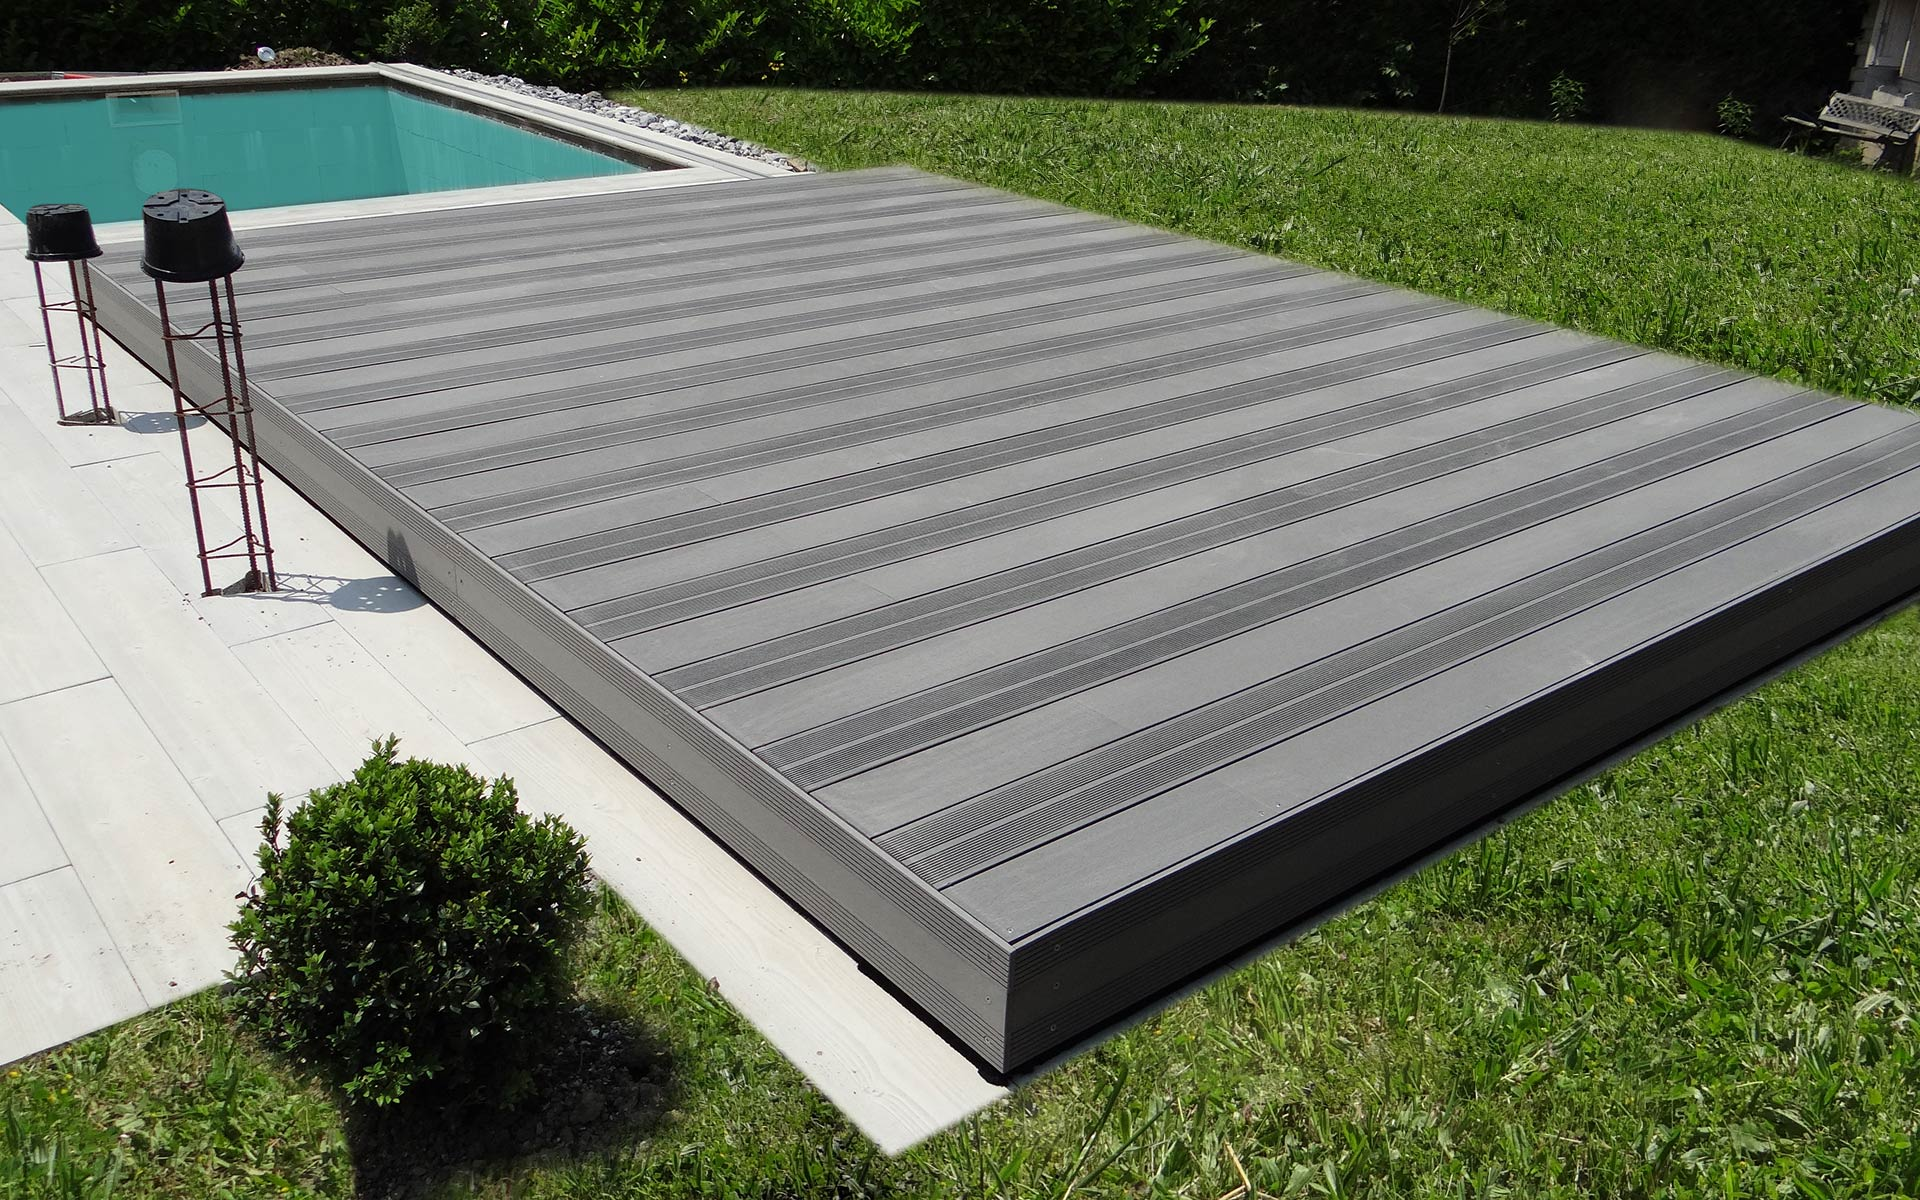 Terrasse mobile s curit piscine informations propos s for Norme securite piscine